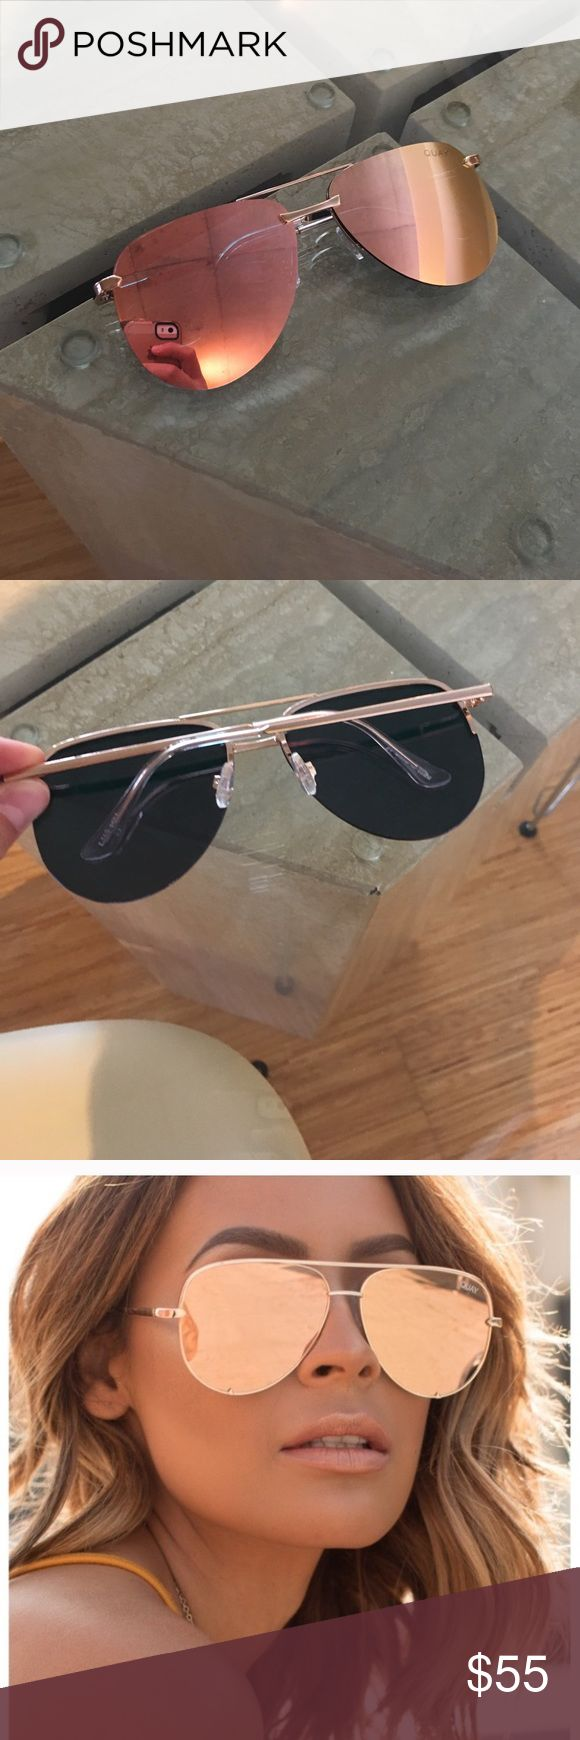 Quay Australia sunglasses Brand new and never worn. They are in excellent condition. Quay Australia Accessories Sunglasses